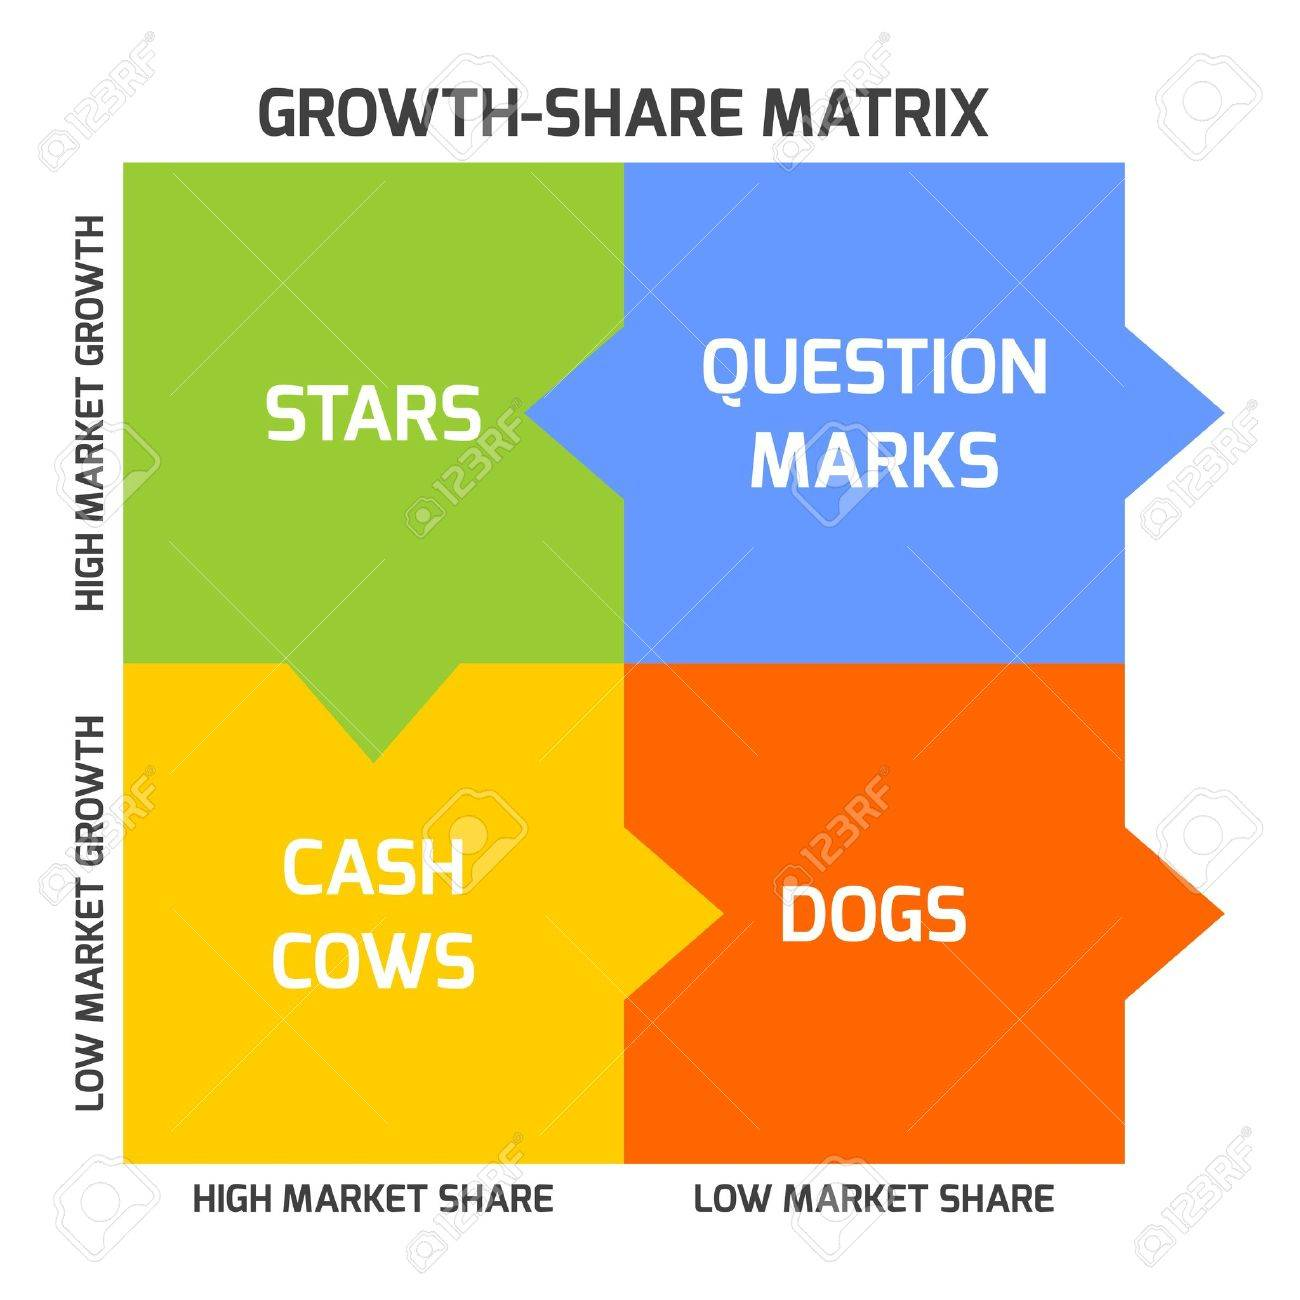 BCG matrix, or Boston matrix, aims to identify high-growth prospects by categorizing the products according to growth rate and market share. - 52308662